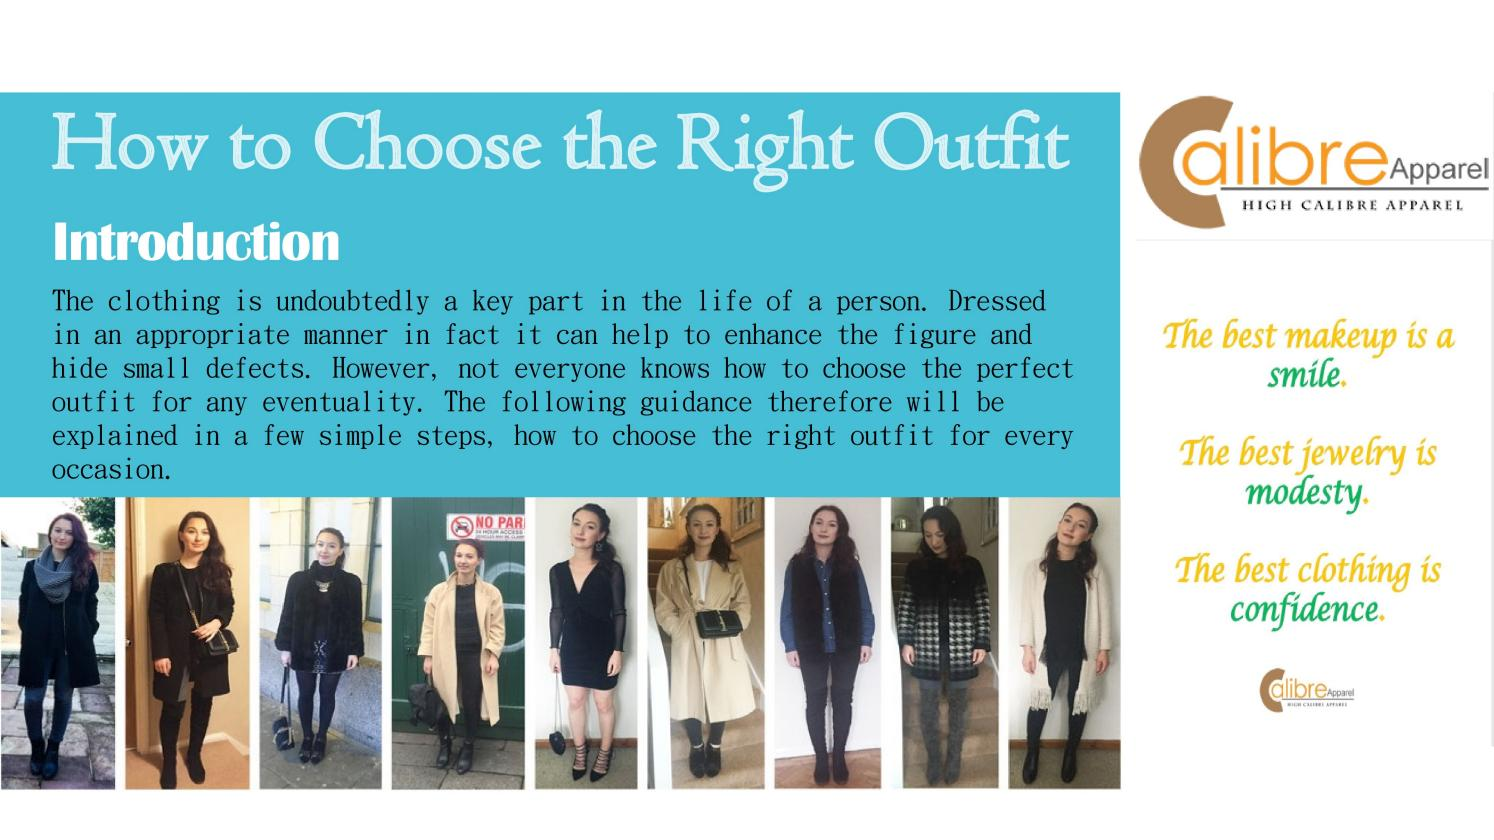 How to choose right outfit by Ketherin Jonsson